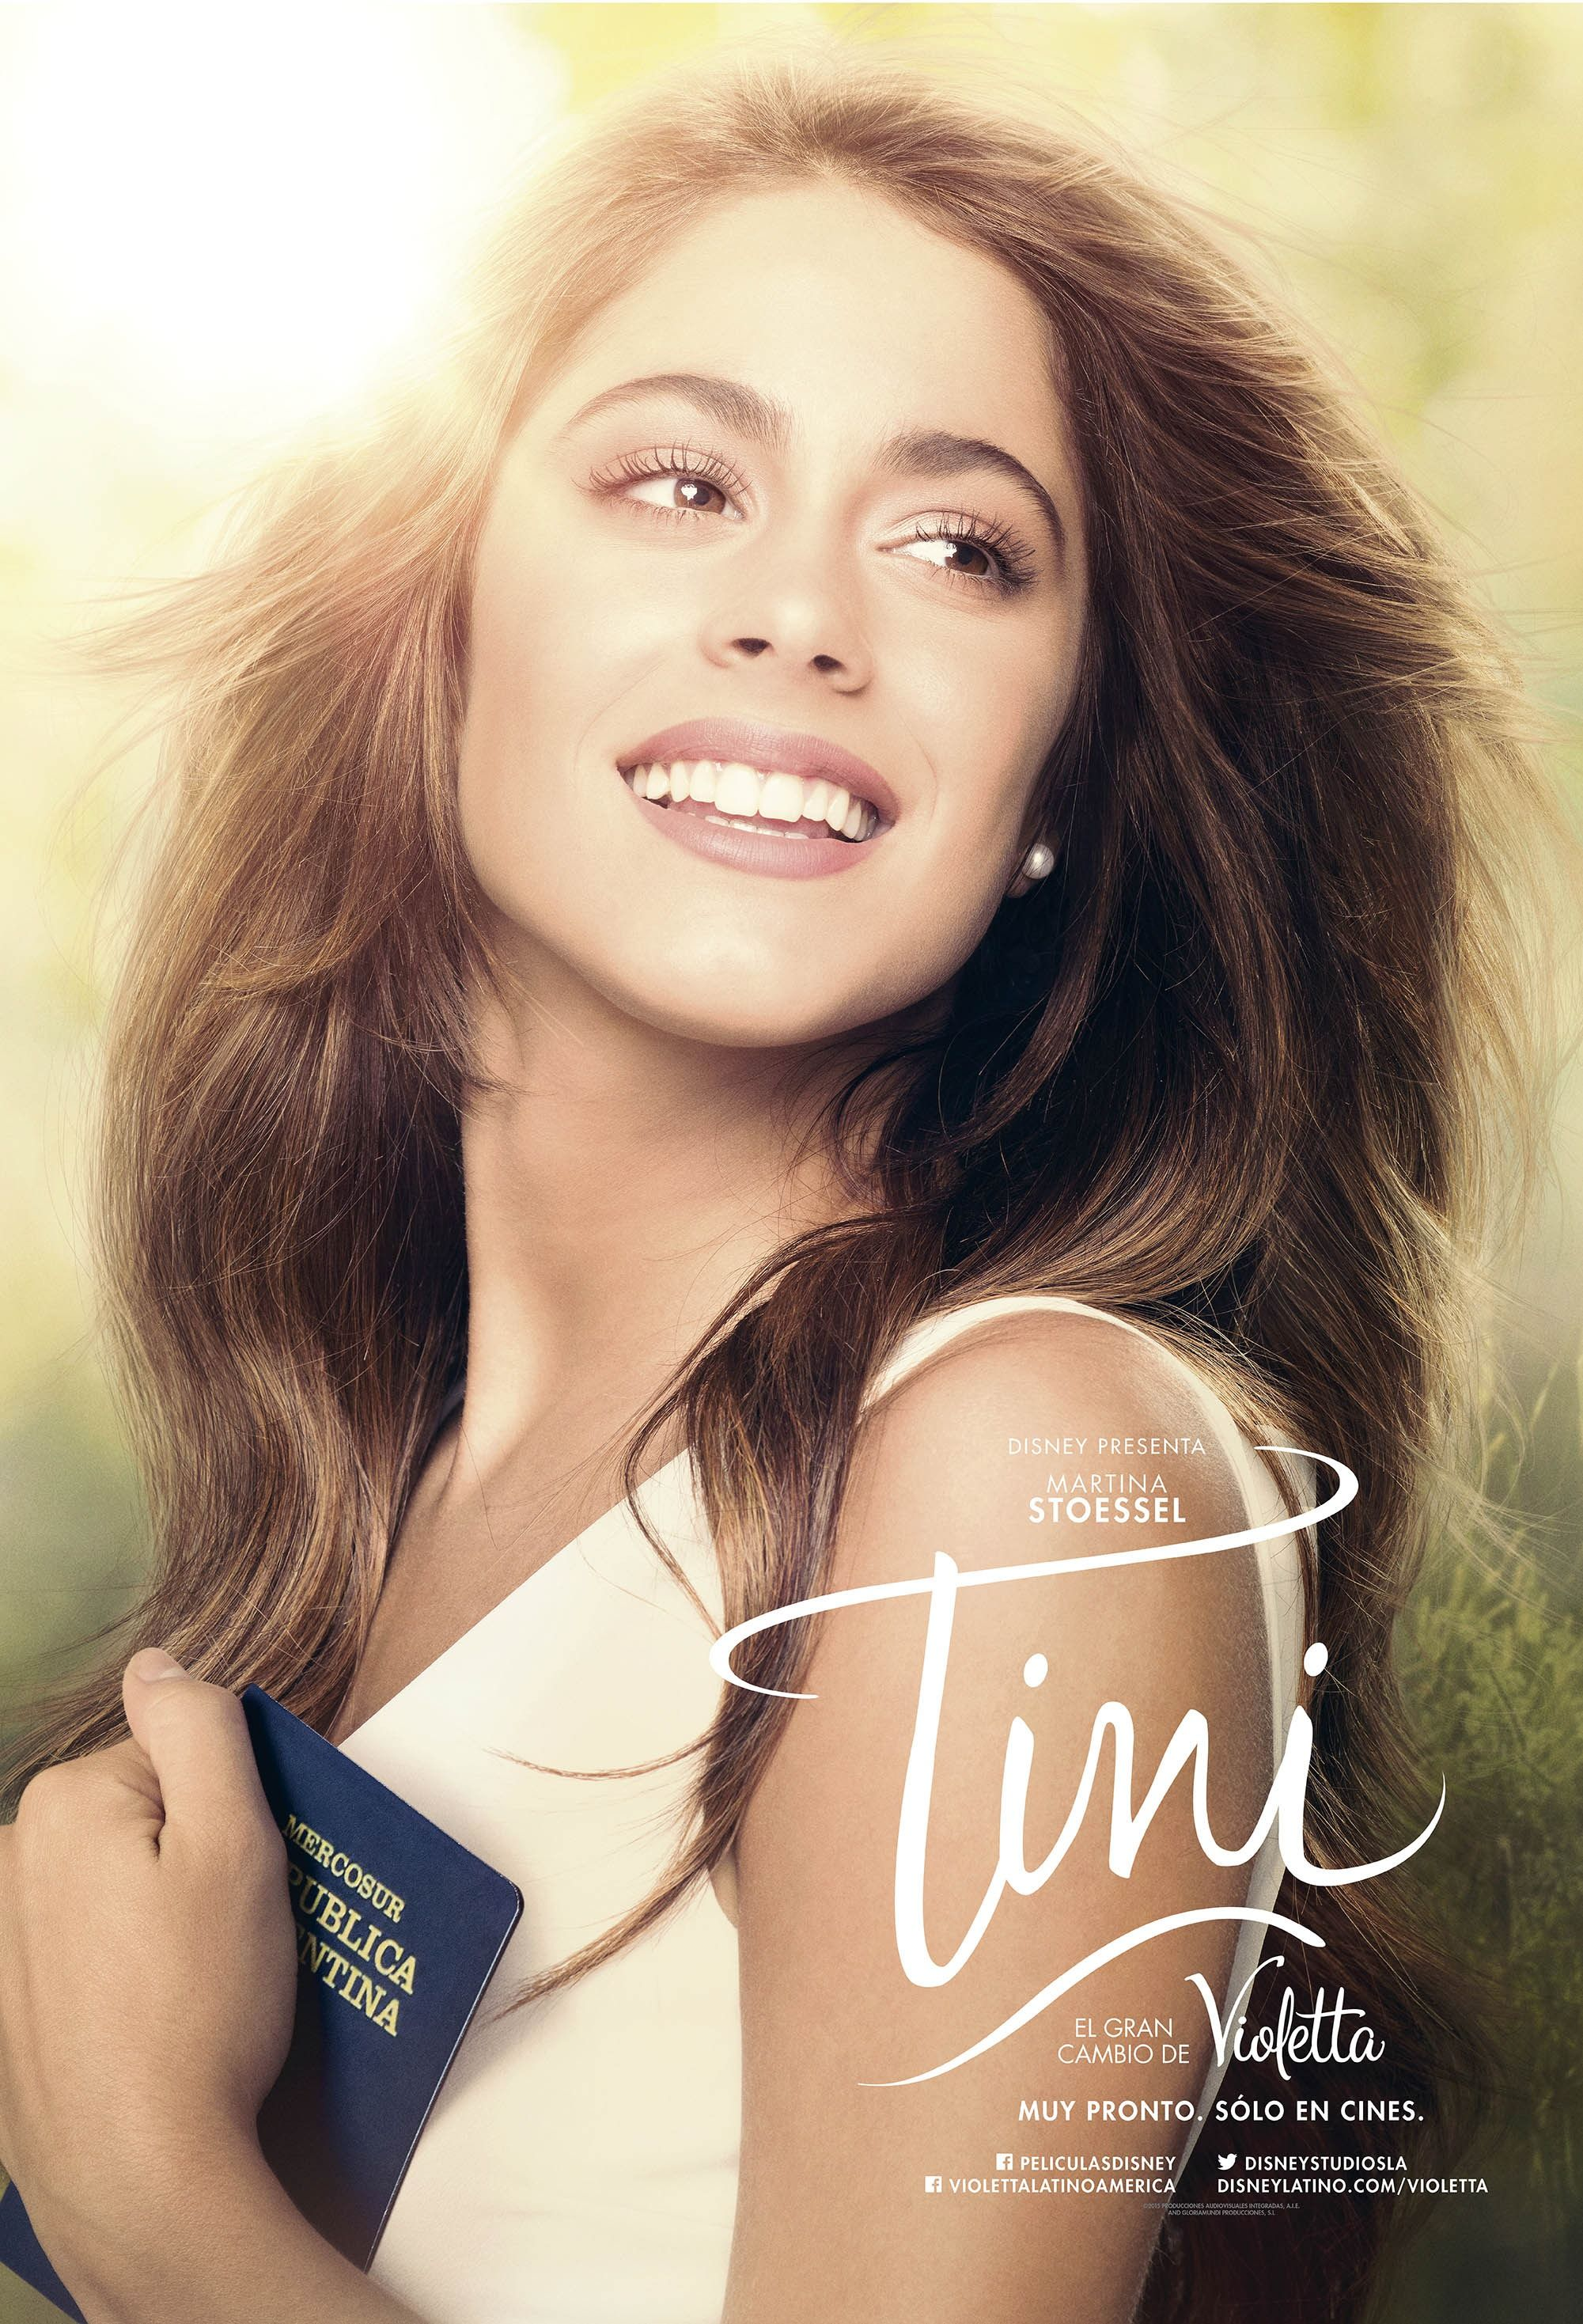 Return To The Main Poster Page For Tini El Gran Cambio De Violetta 1 Of 12 Martina Stoessel Celebrities Movies